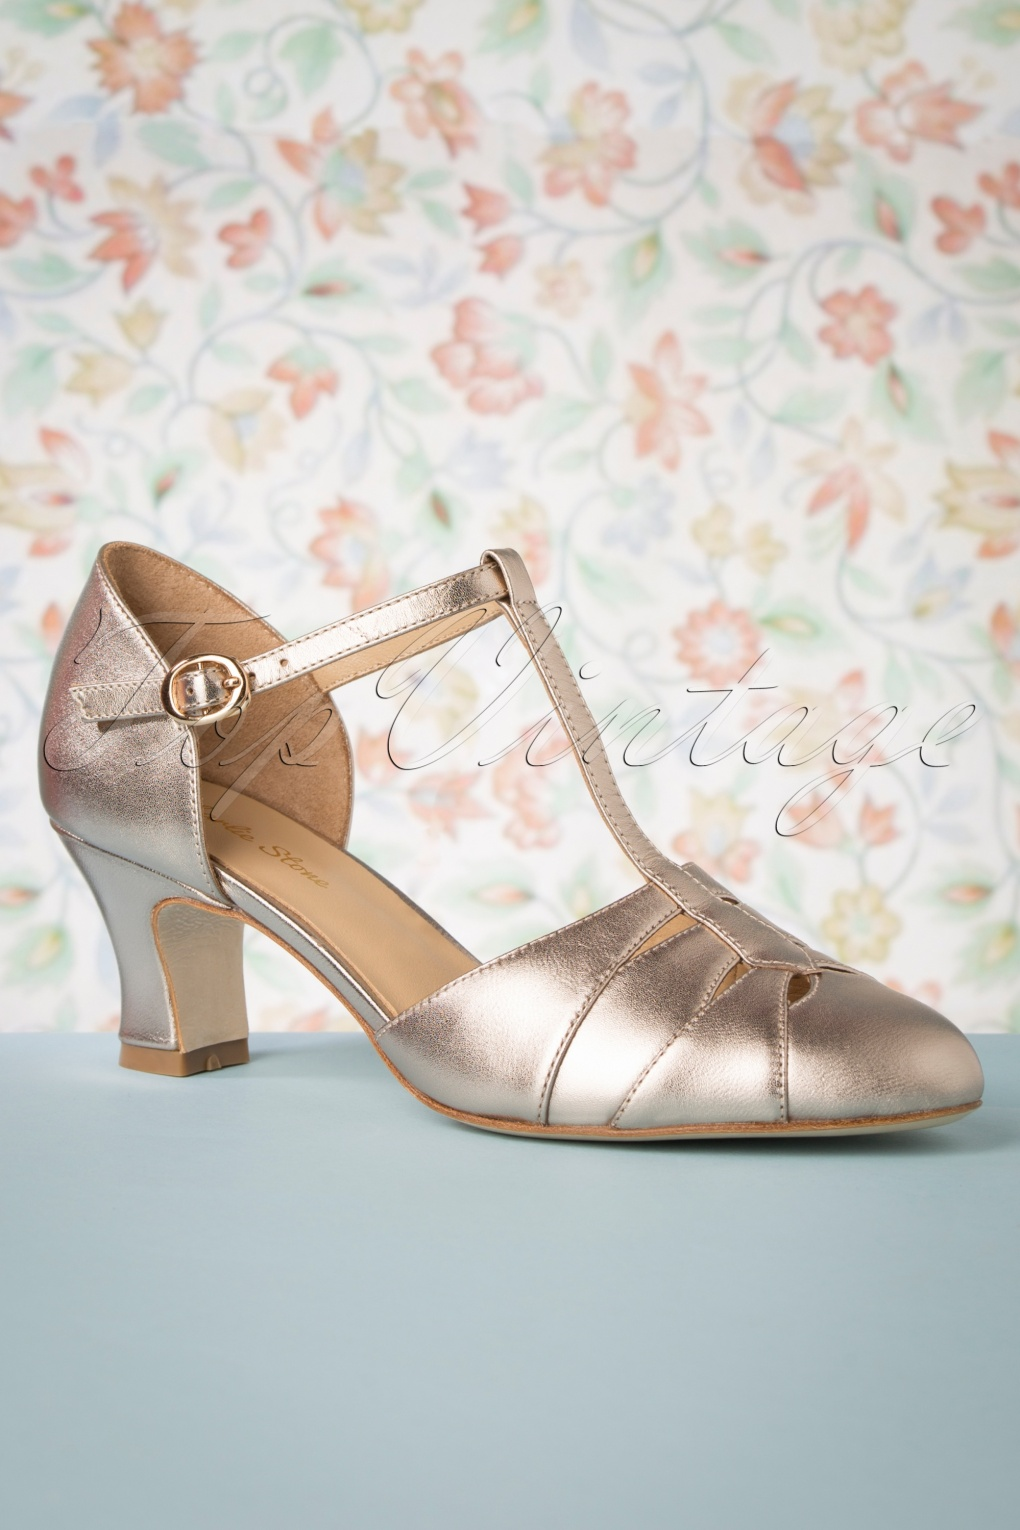 Vintage Style Shoes, Vintage Inspired Shoes 50s Monaco T-Strap Pumps in French Champagne £140.56 AT vintagedancer.com